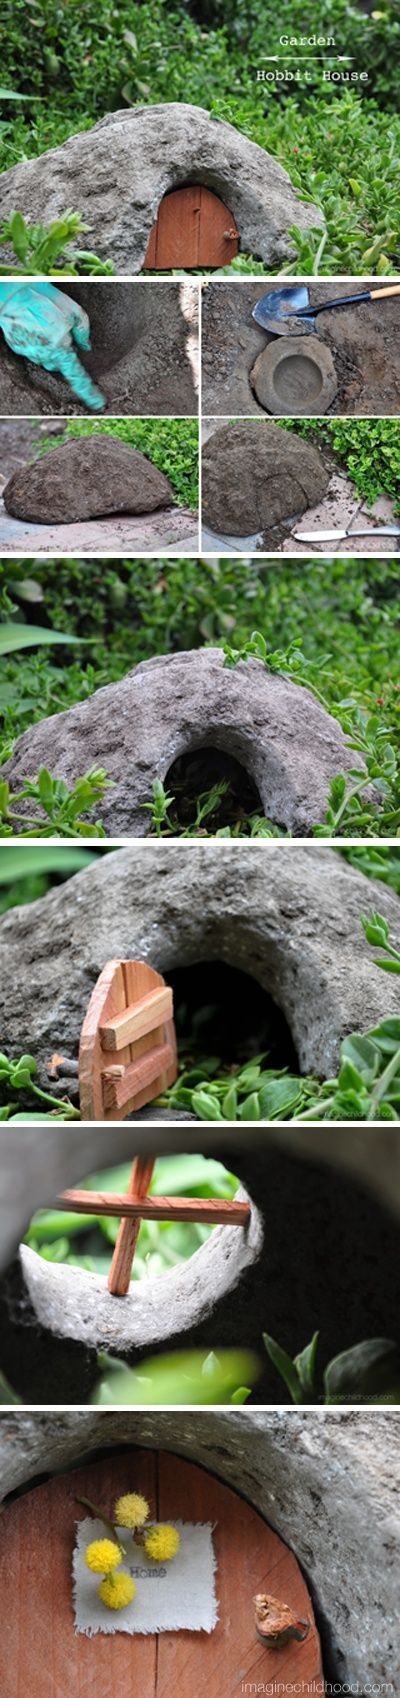 Garden Hobbit House Tutorial